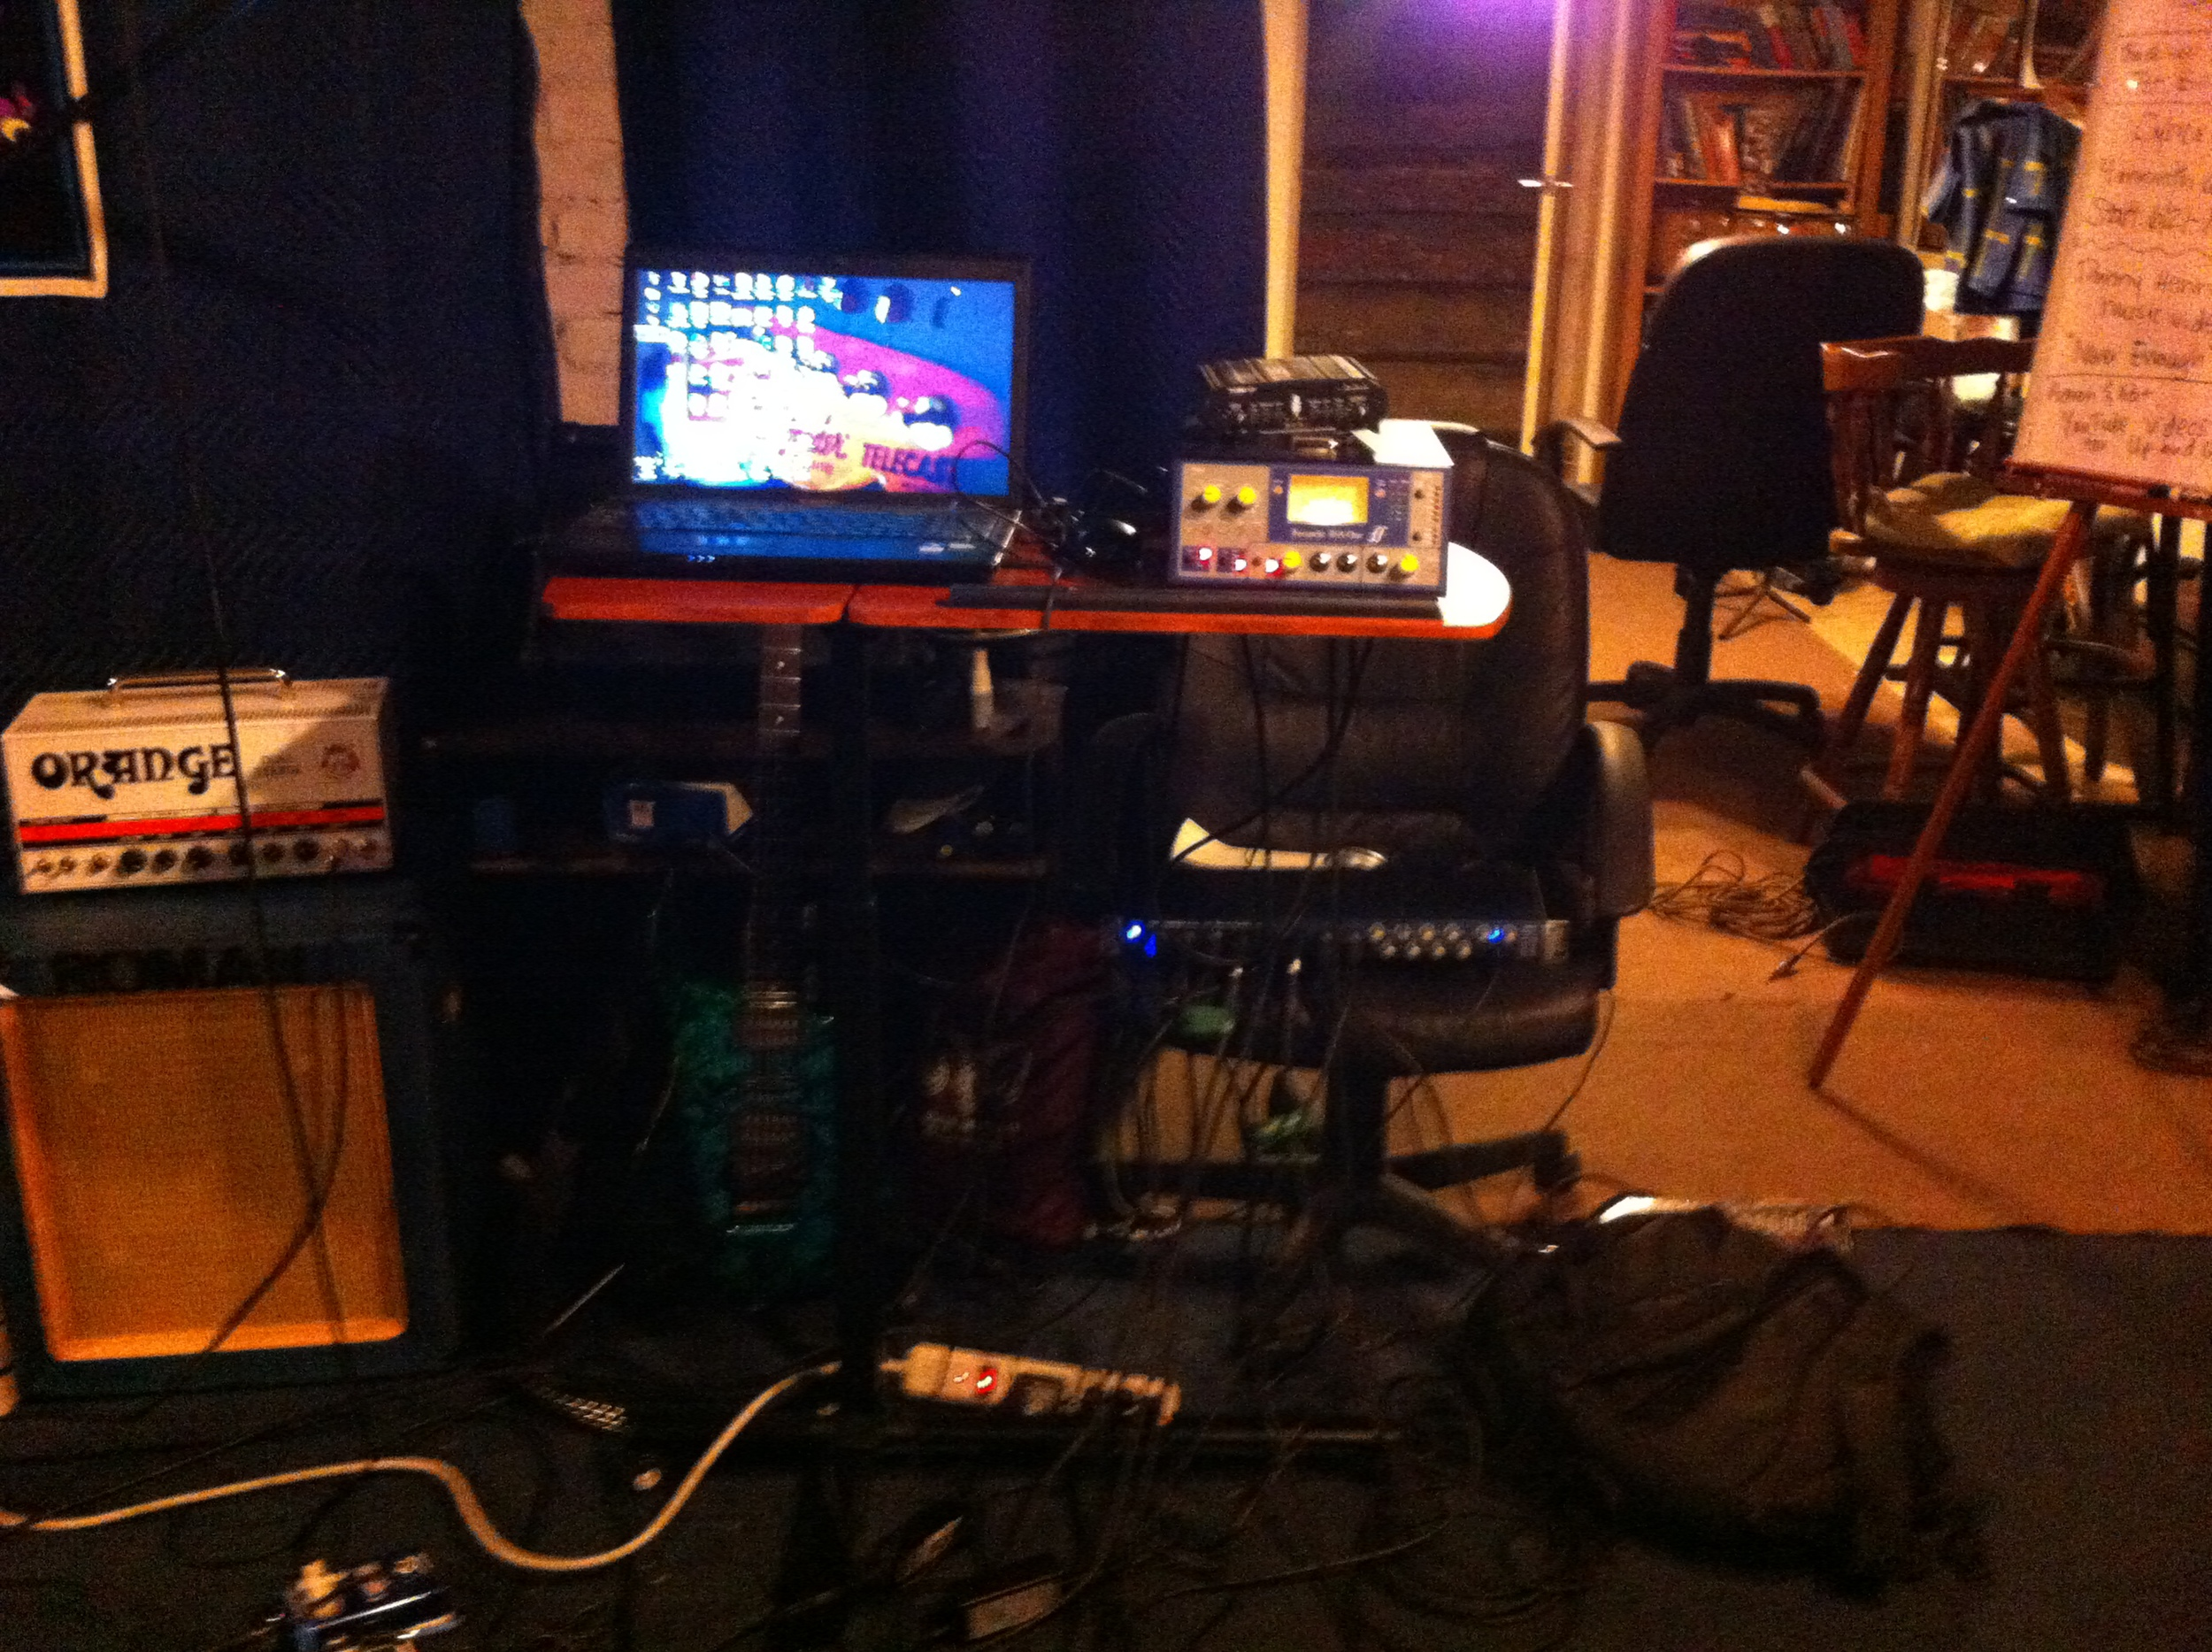 Pat's Focusrite ISA into a Presonus Audiobox fed into his laptop with Acoustica Mixcraft 6 as the DAW.